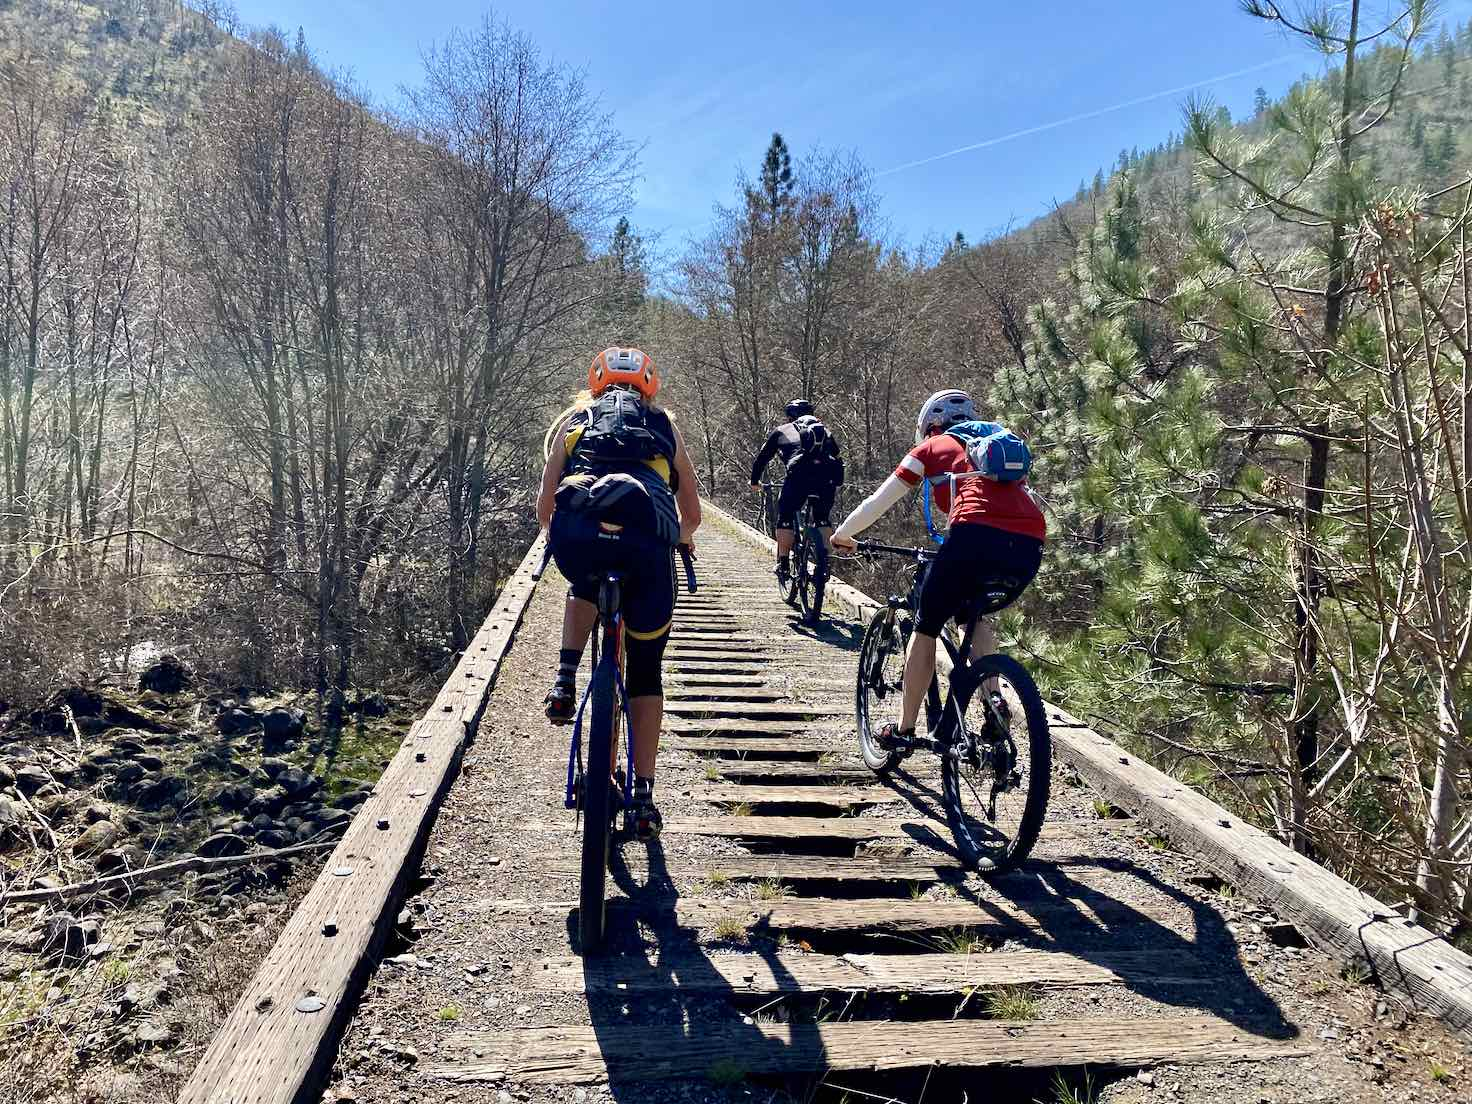 Cyclists crossing over an old railroad trestle bridge on the Klickitat Trail.